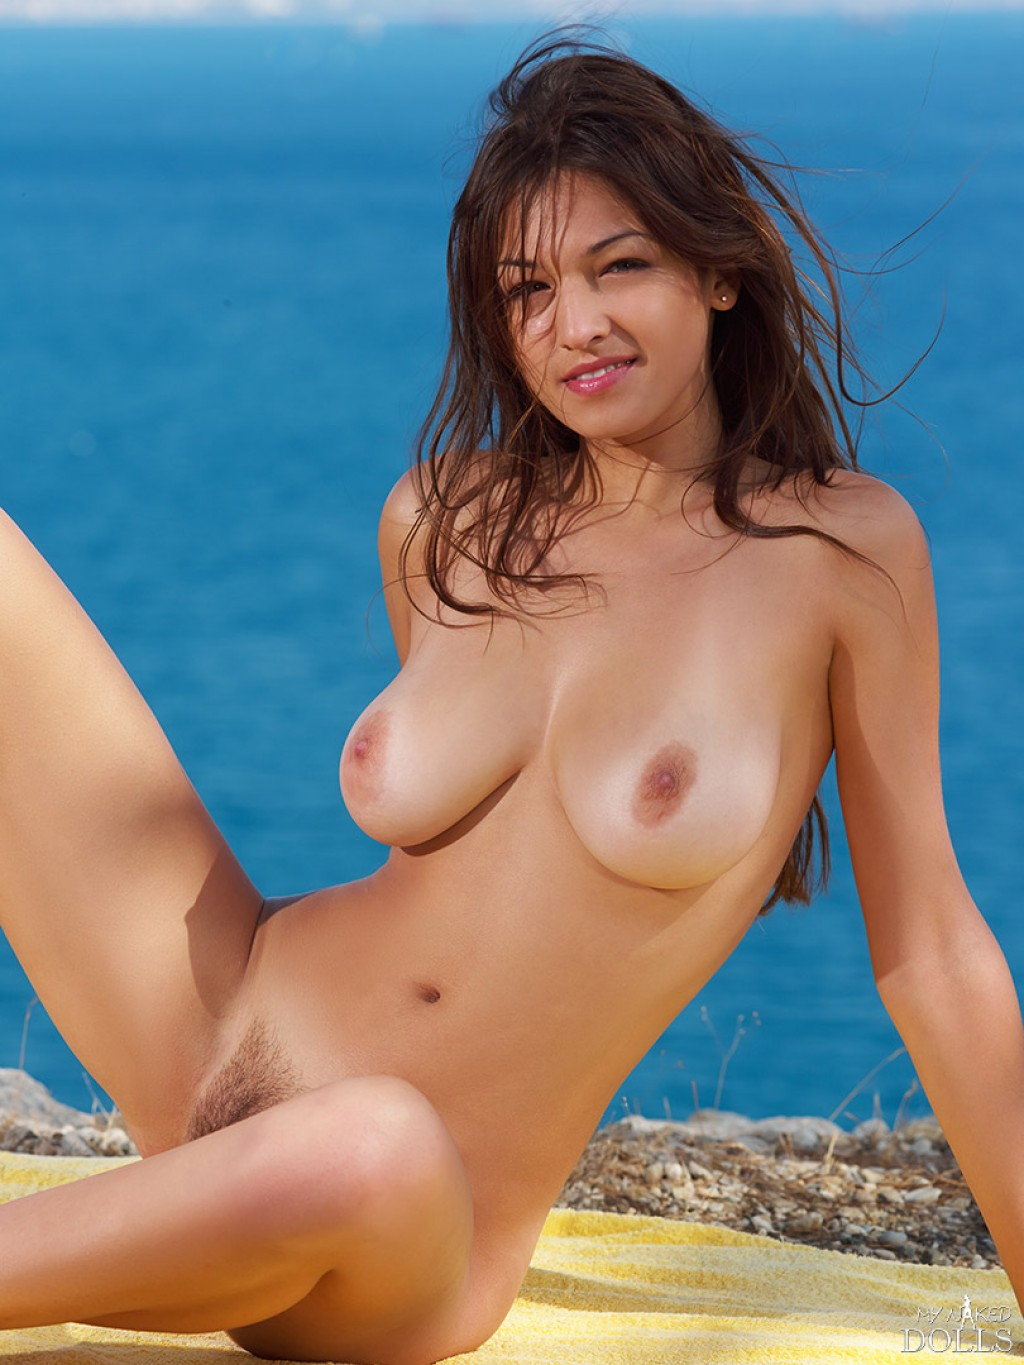 pictures of girls in the nude